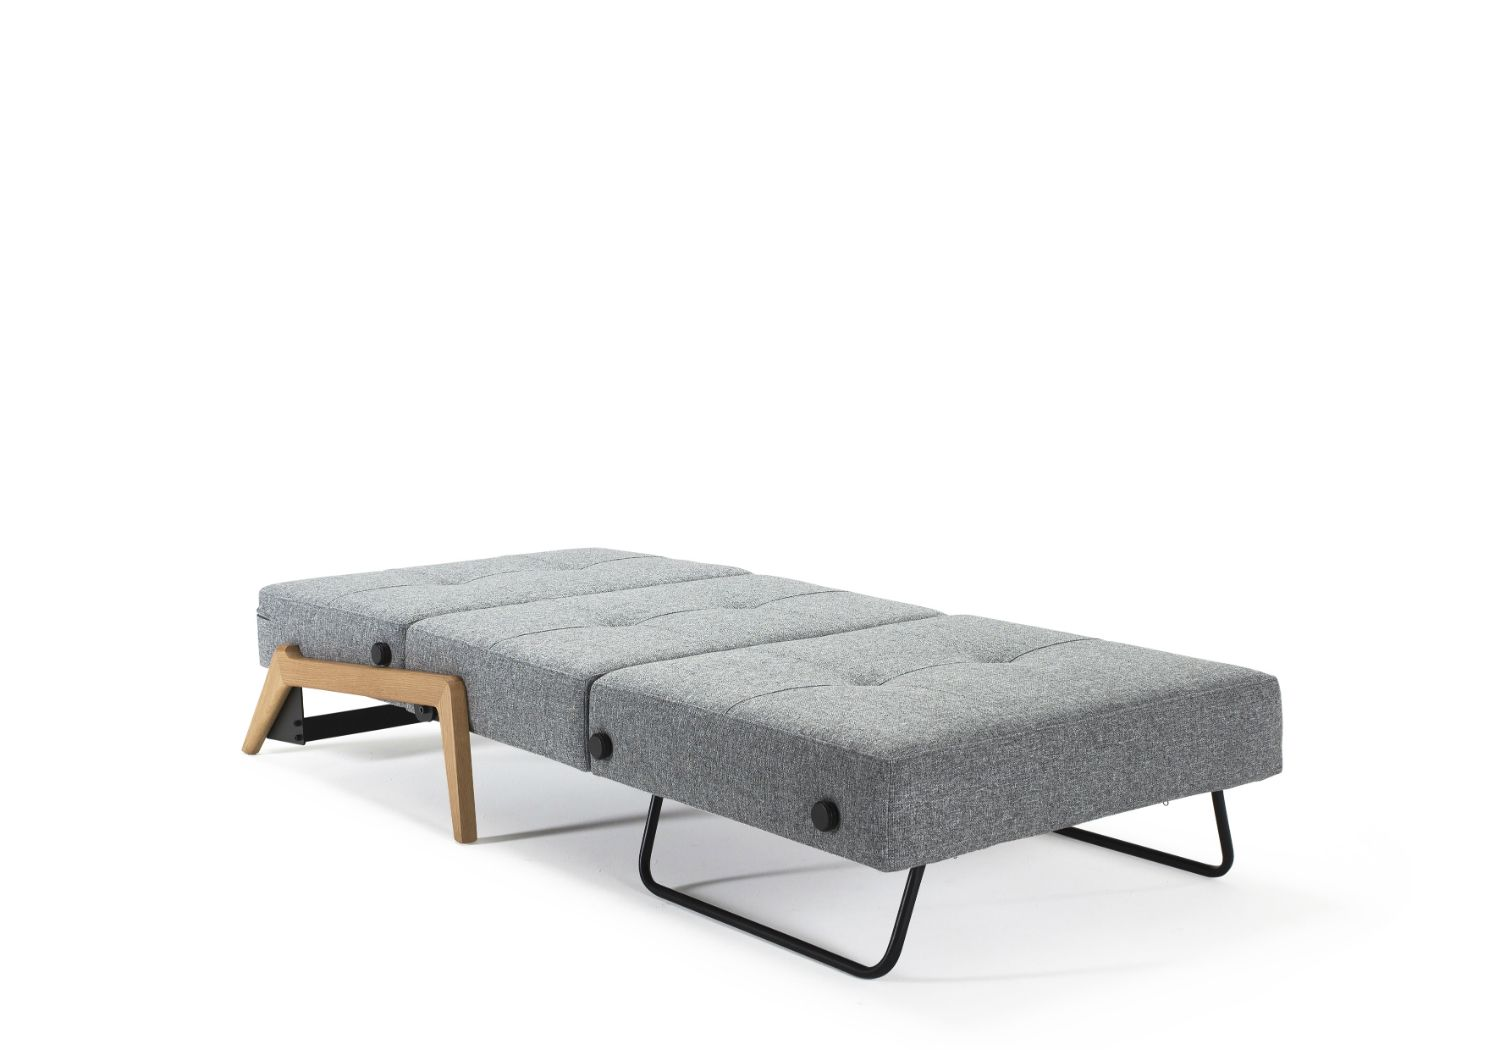 Strange Cubed 90 Wood Sofa Bed In 2019 Wood Sofa Sofa Bed Ocoug Best Dining Table And Chair Ideas Images Ocougorg